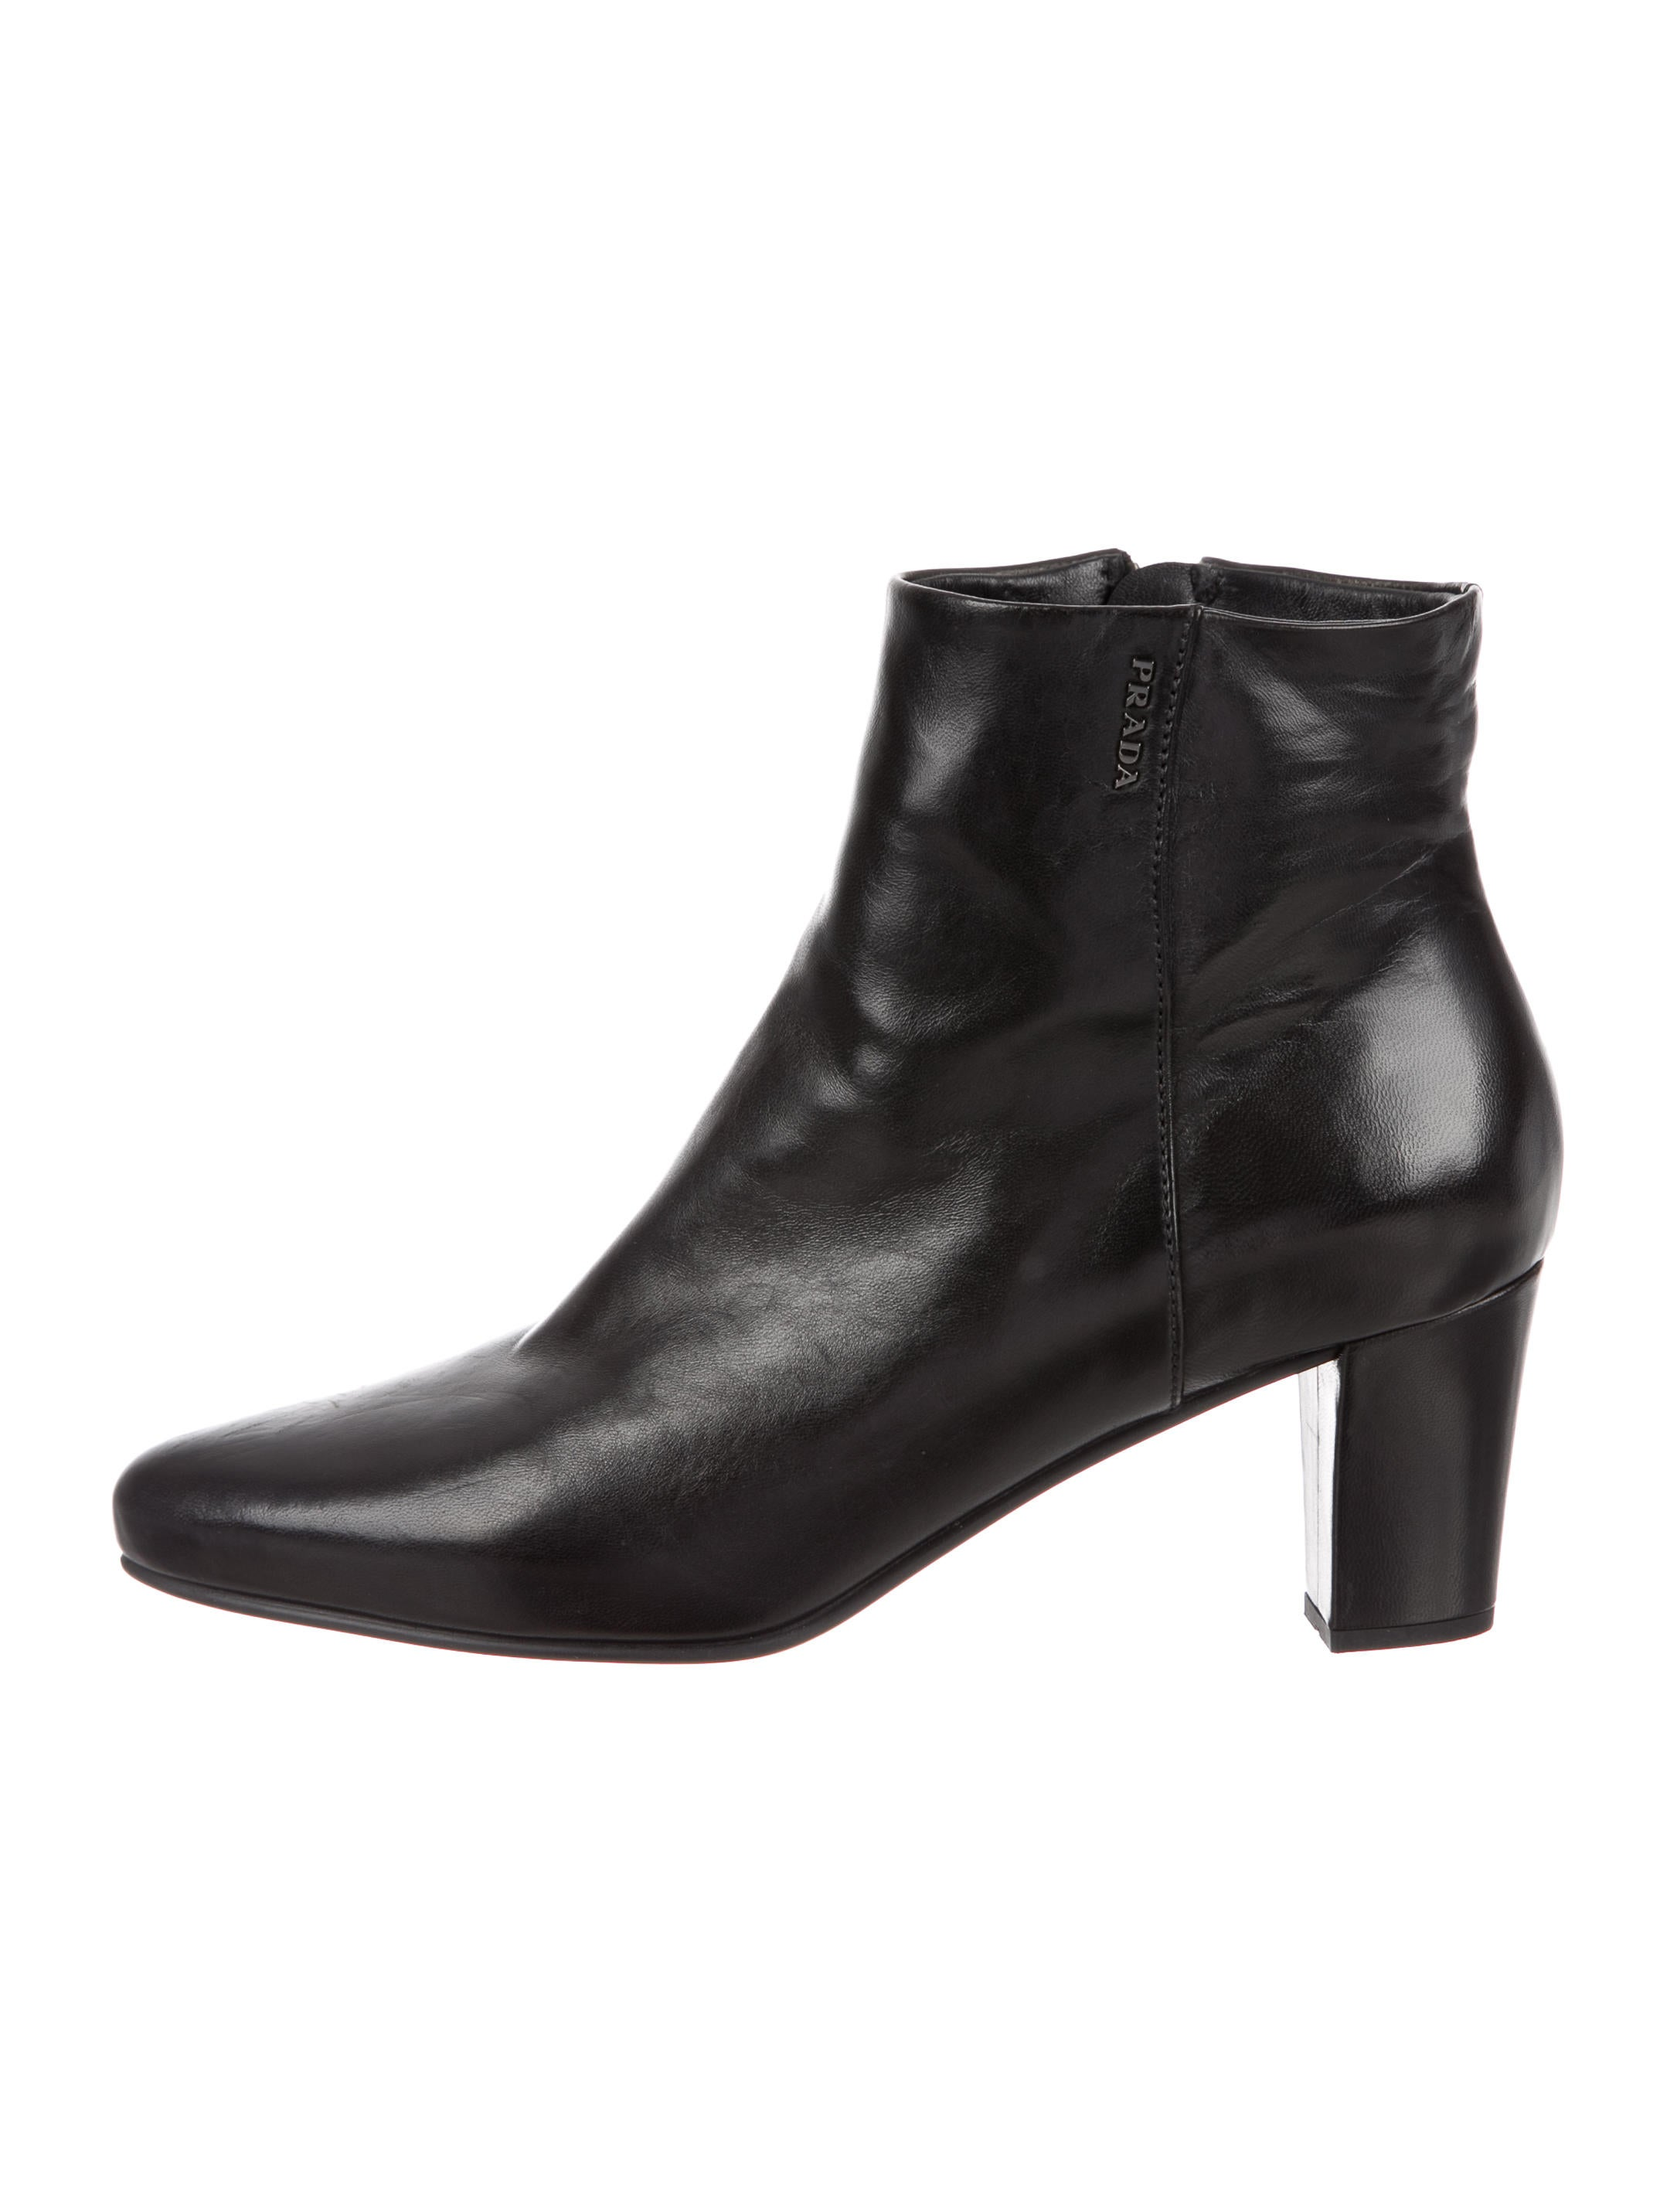 Prada Sport Leather Pointed-Toe Ankle Boots outlet pre order perfect sale online cheap low shipping buy cheap fast delivery the cheapest sale online Zcmt7YE